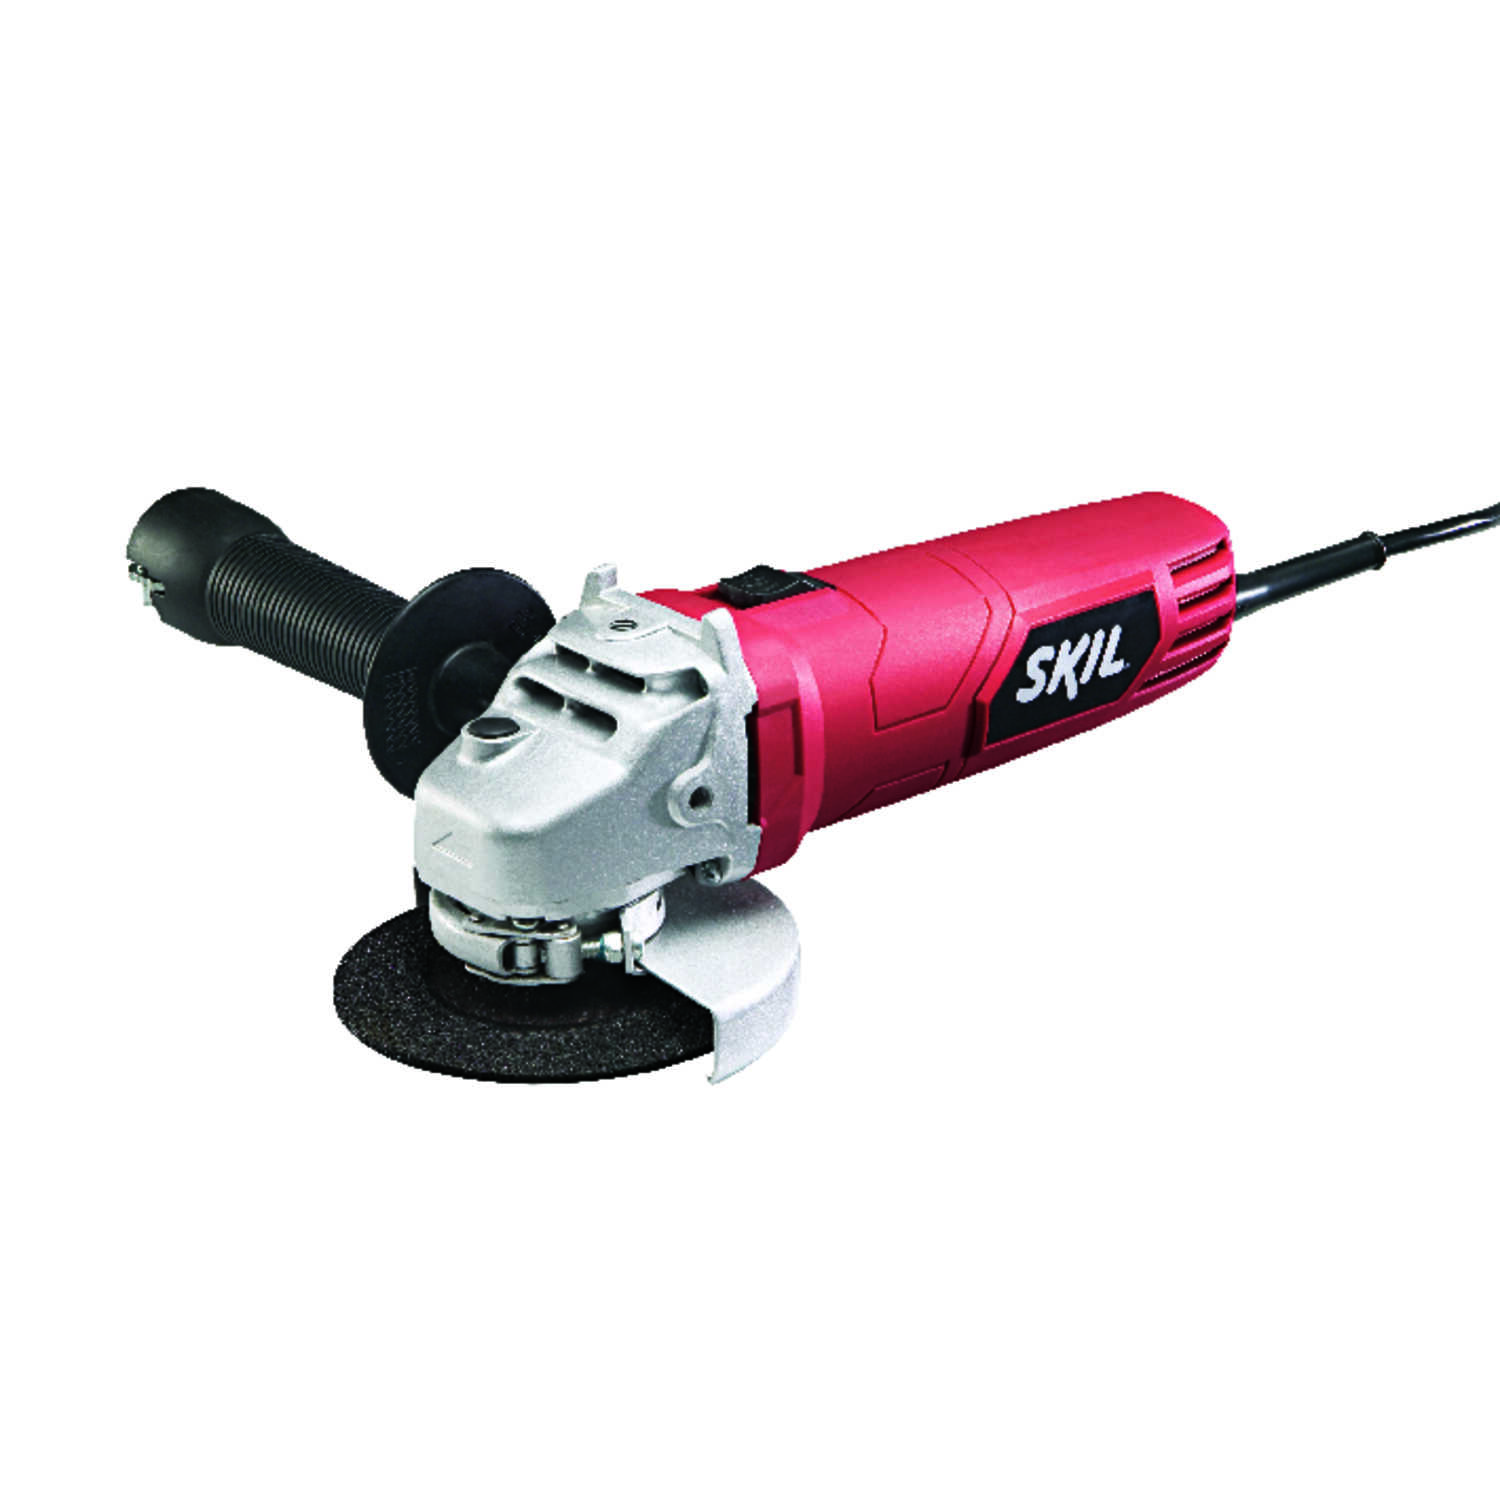 Skil  4-1/2 in. 120 volt 6 amps Corded  Small  Angle Grinder  Kit 11500 rpm